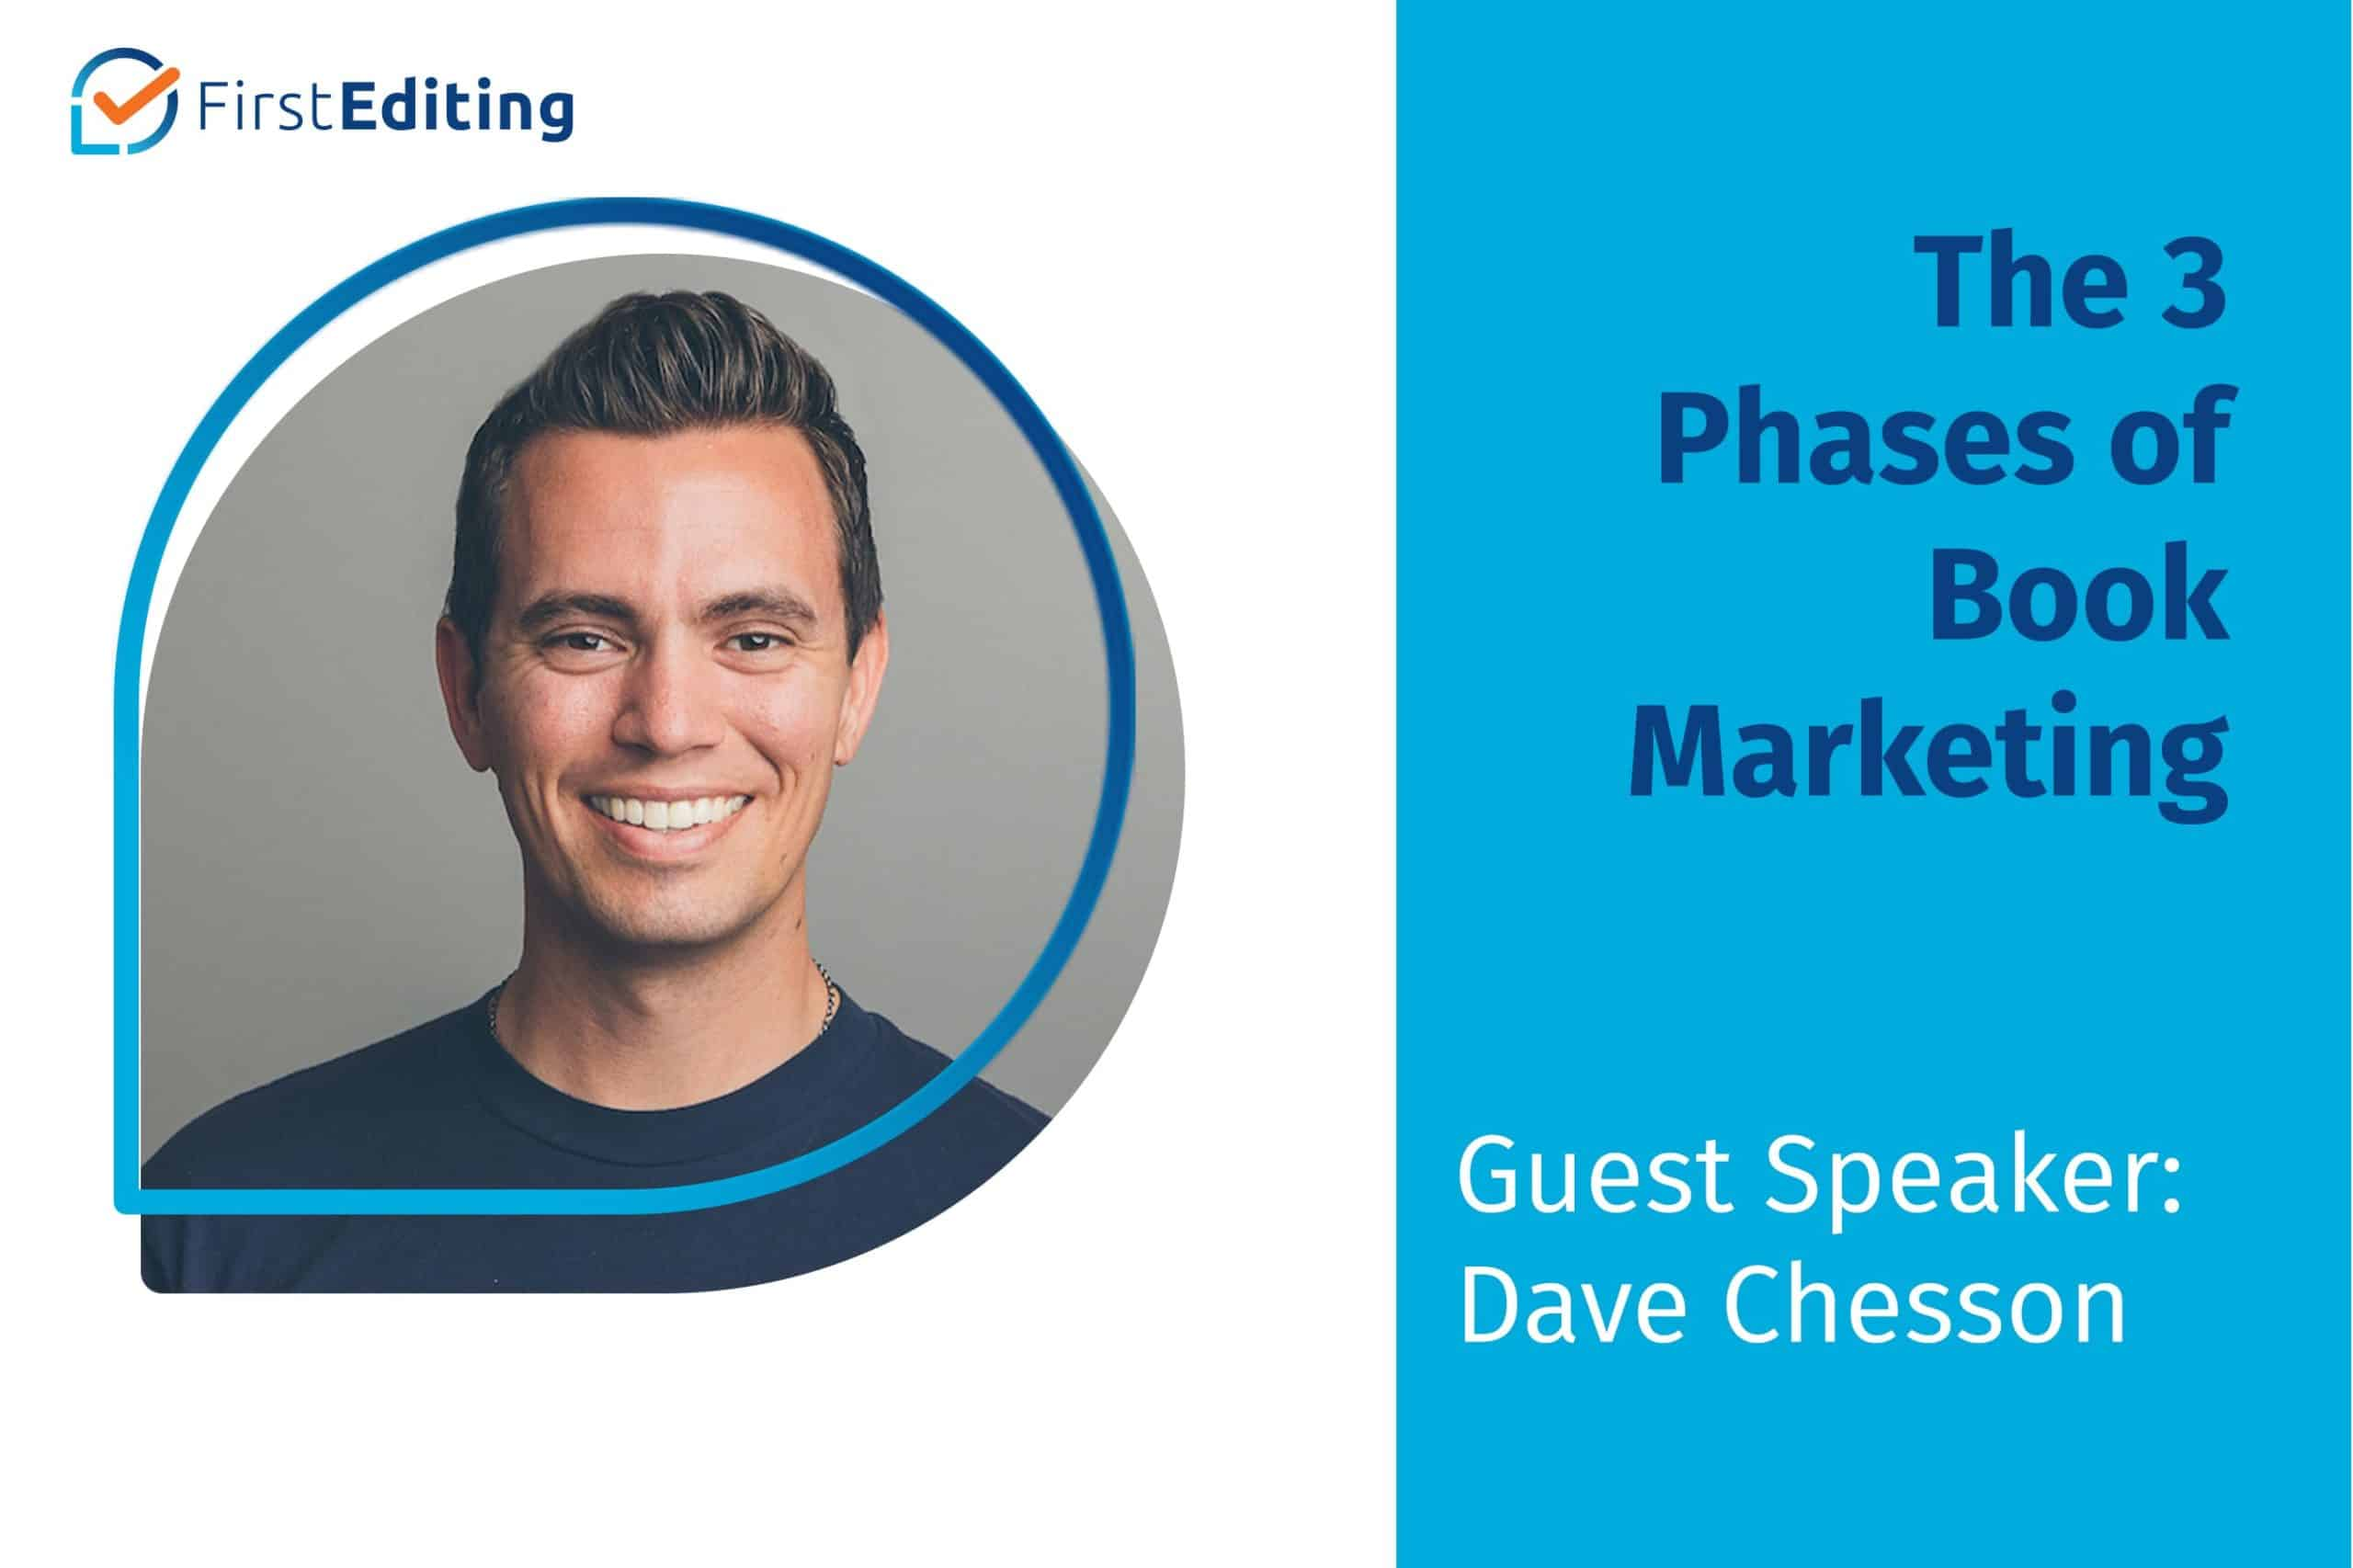 The 3 Phases of Book Marketing with Dave Chesson